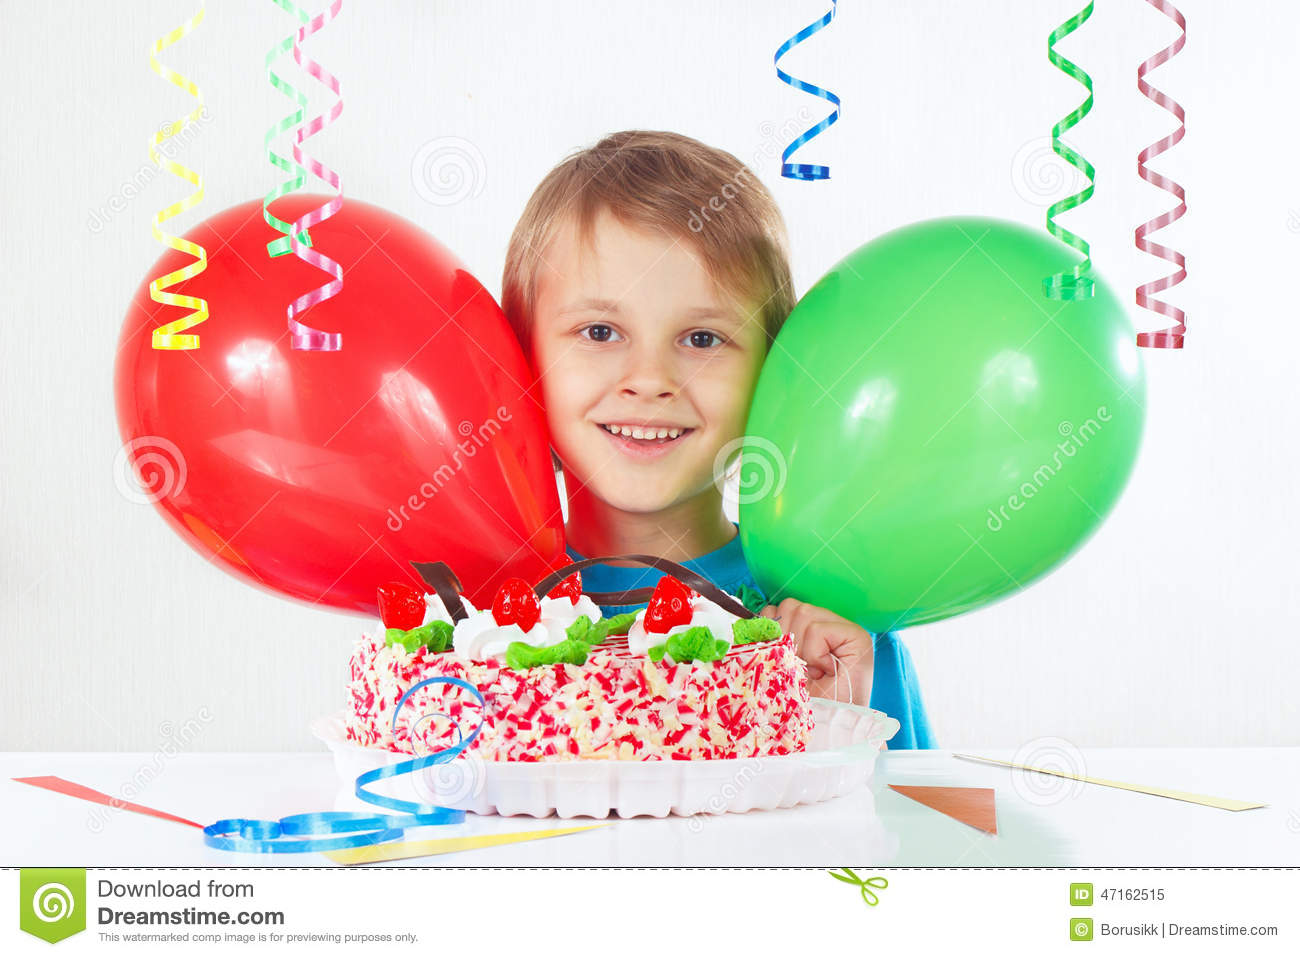 Little Boy With A Birthday Cake And Balloons On White Background